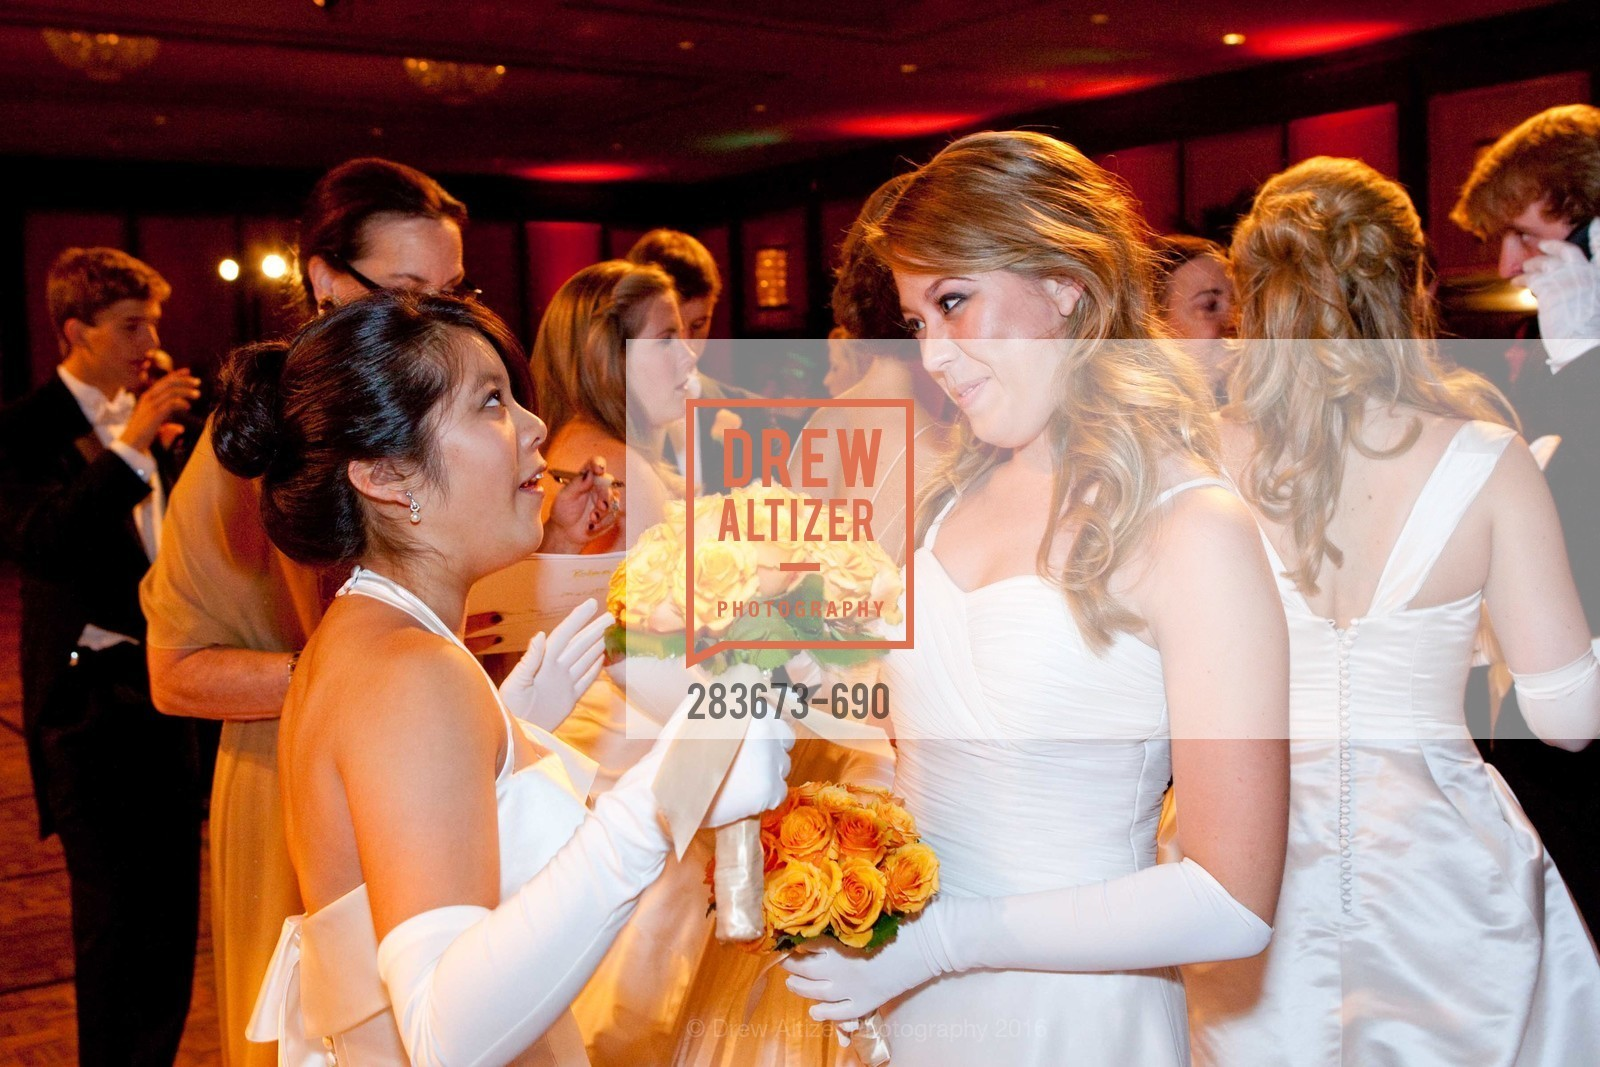 Marissa Lee Seto, Victoria Renner Student, 2009 Debutante Ball, Unknown, July 4th, 2008,Drew Altizer, Drew Altizer Photography, full-service agency, private events, San Francisco photographer, photographer california